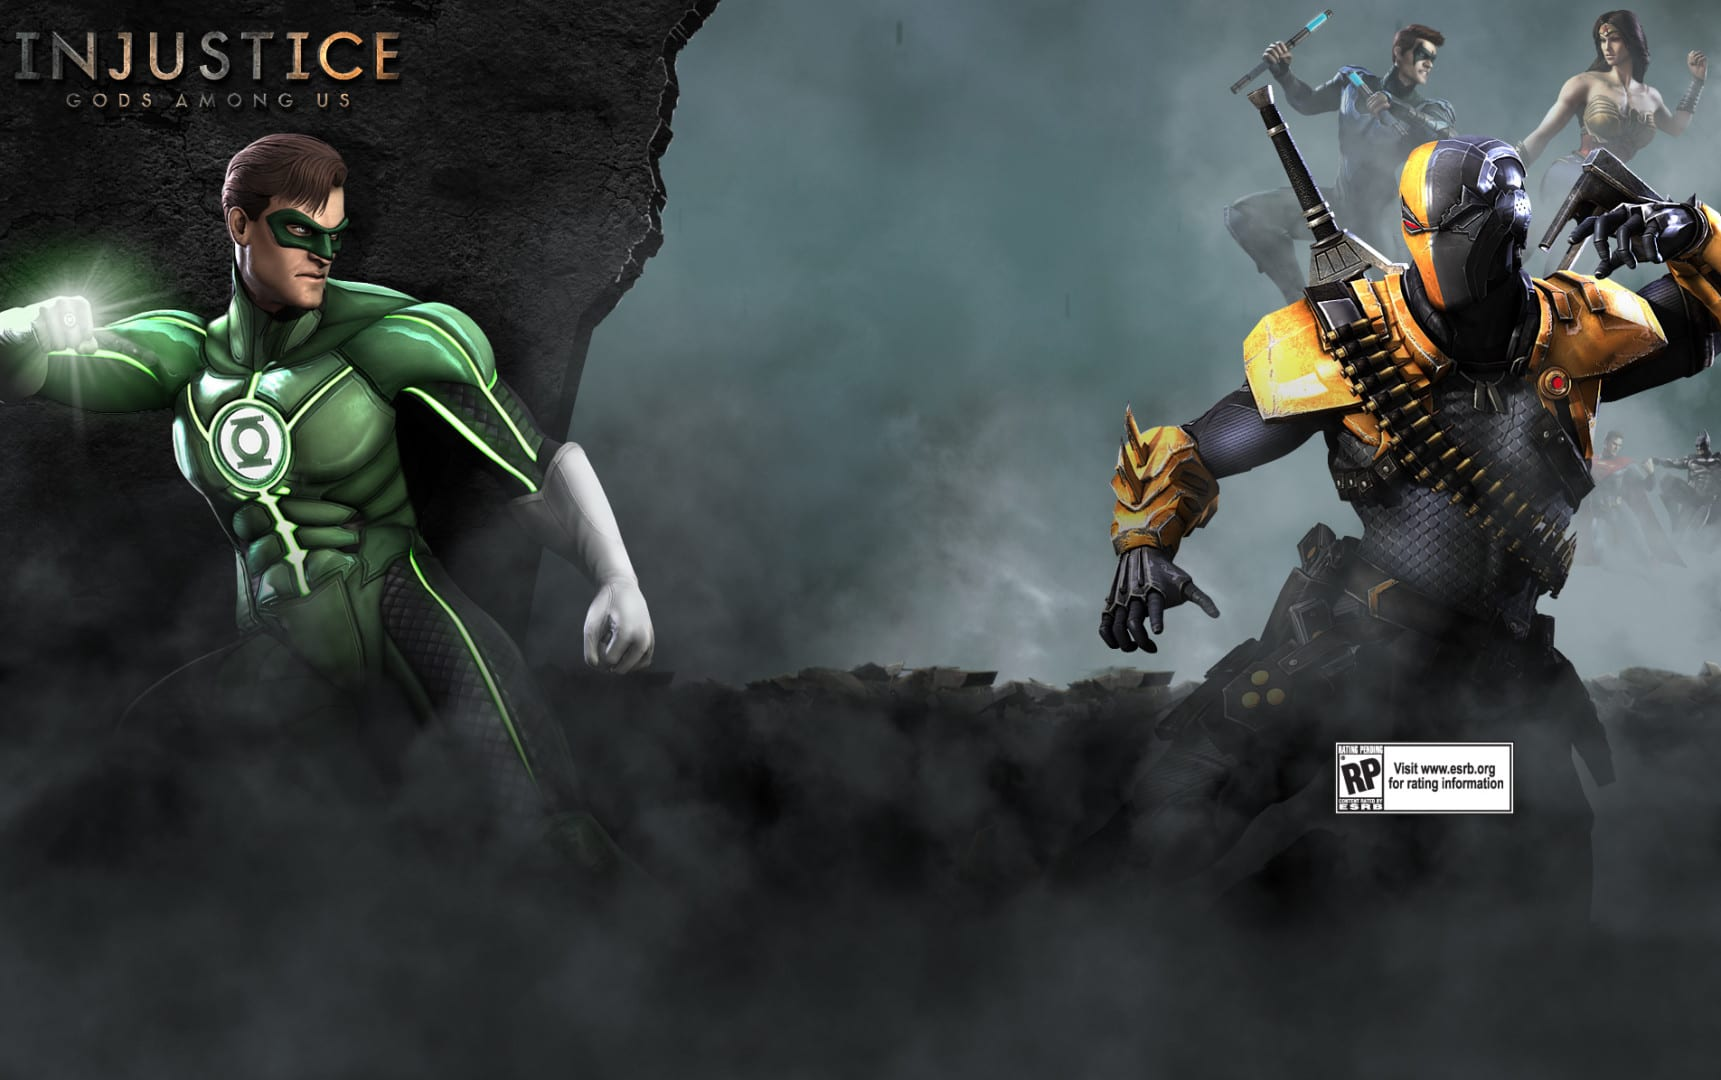 injustice-gods-among-us-deathstroke-artwork